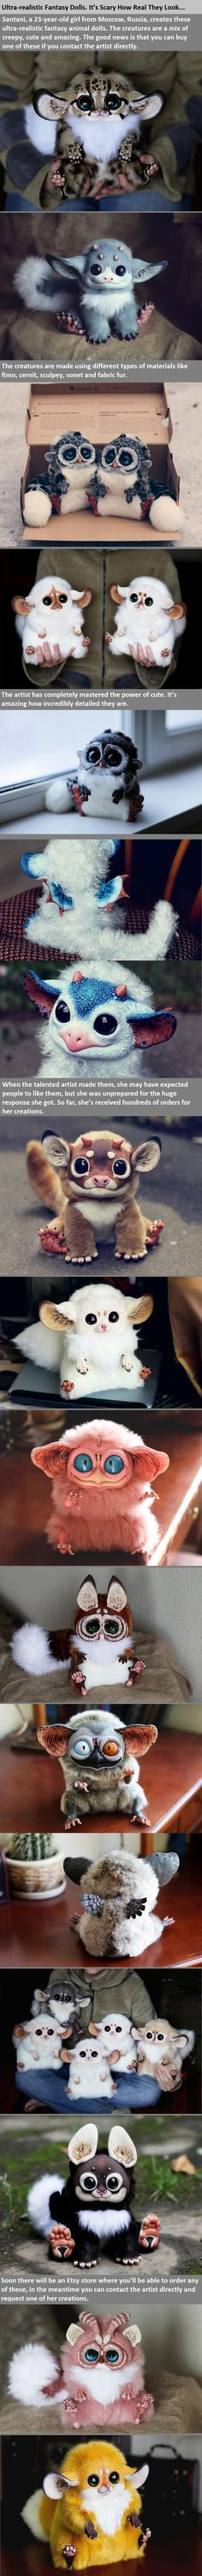 23 year old Santani from Moscow creates these ultra realistic fantasy animal dolls